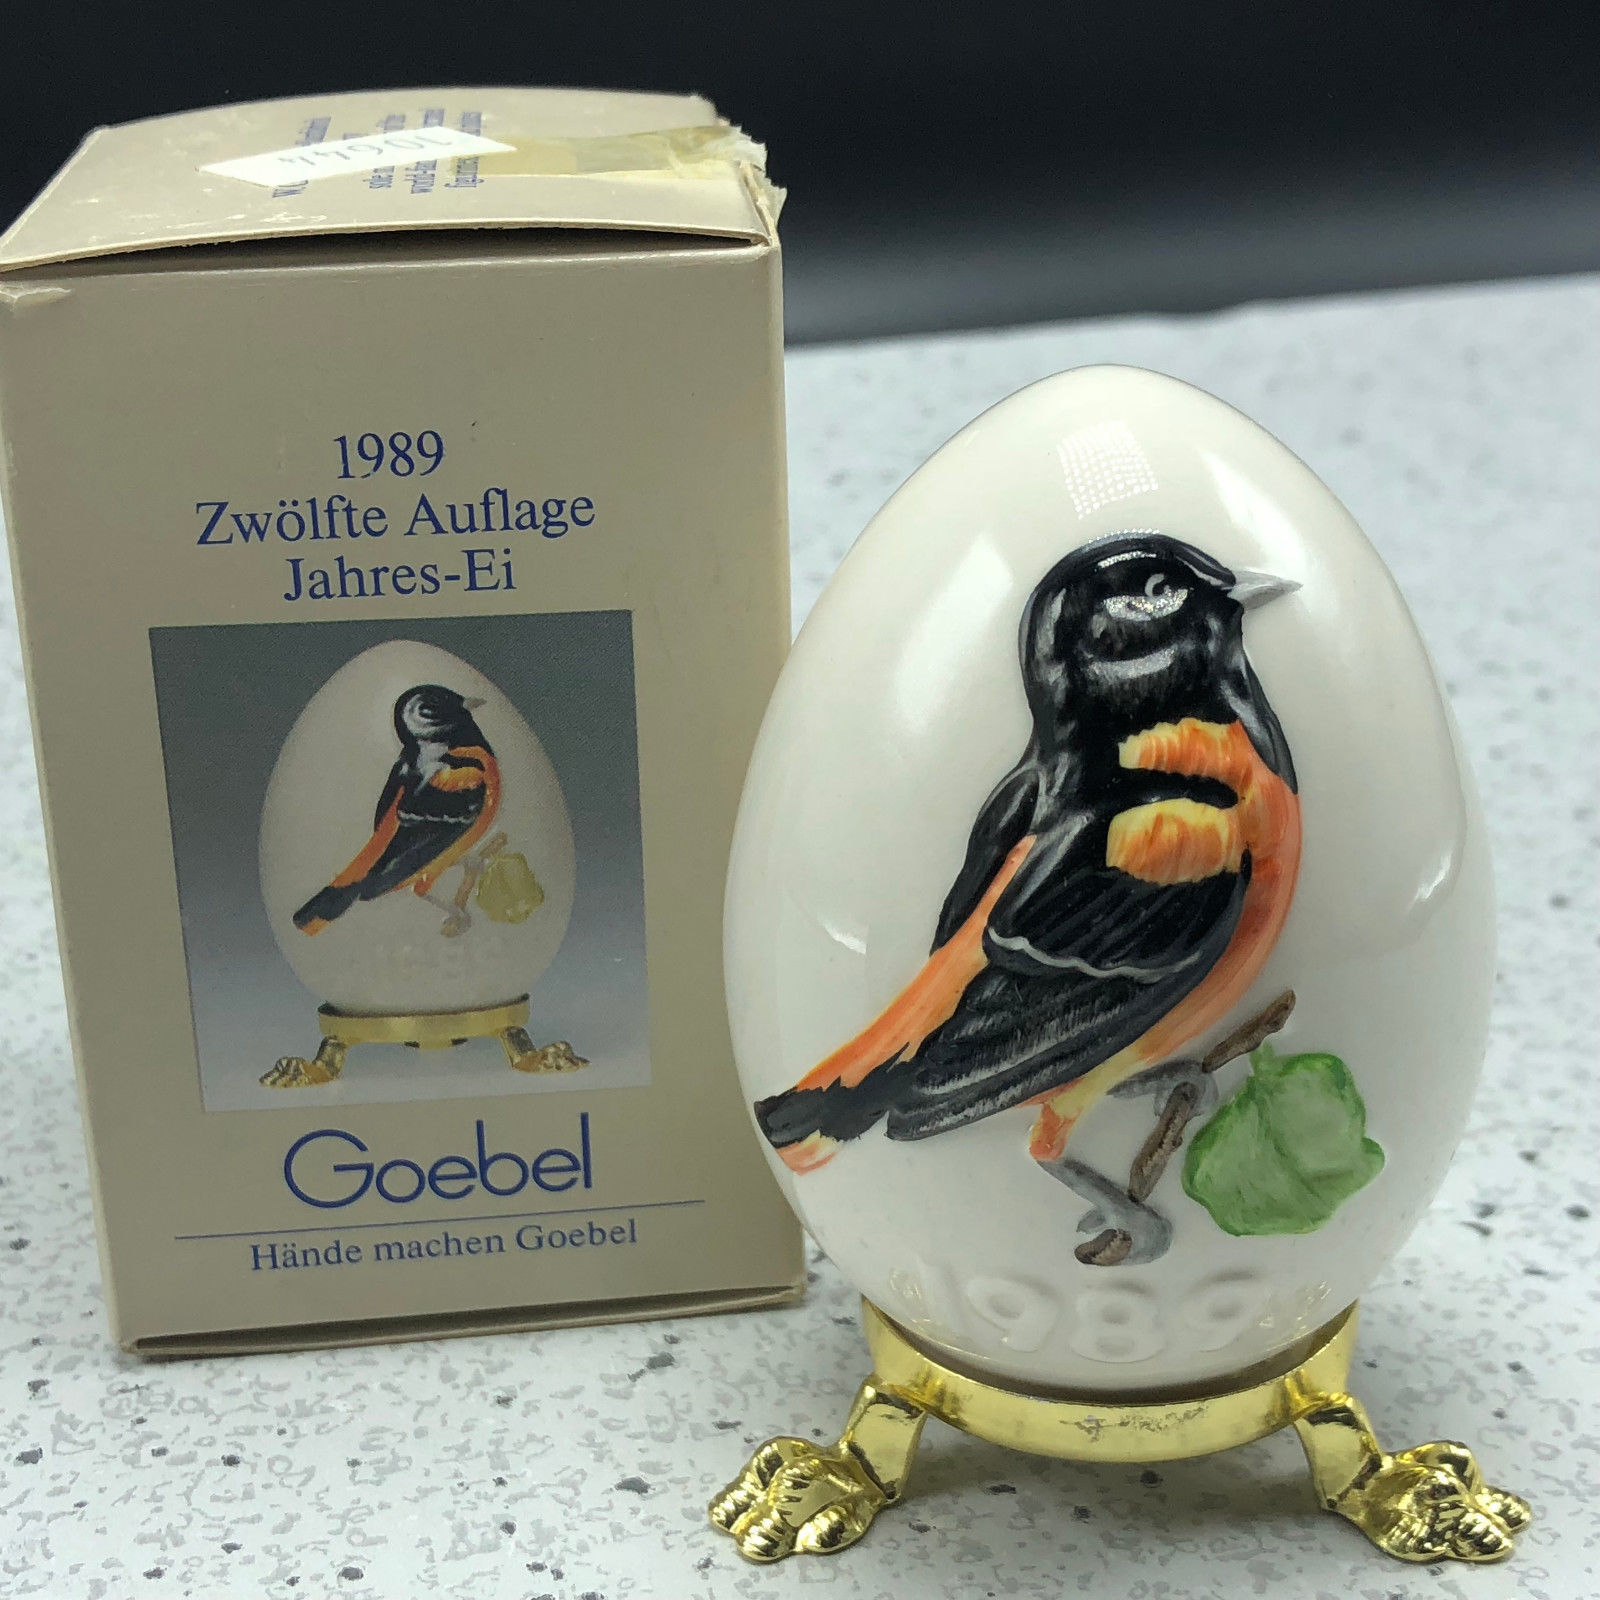 1989 GOEBEL ANNUAL EASTER EGG West Germany 12th edition figurine 51779 Oriole UK